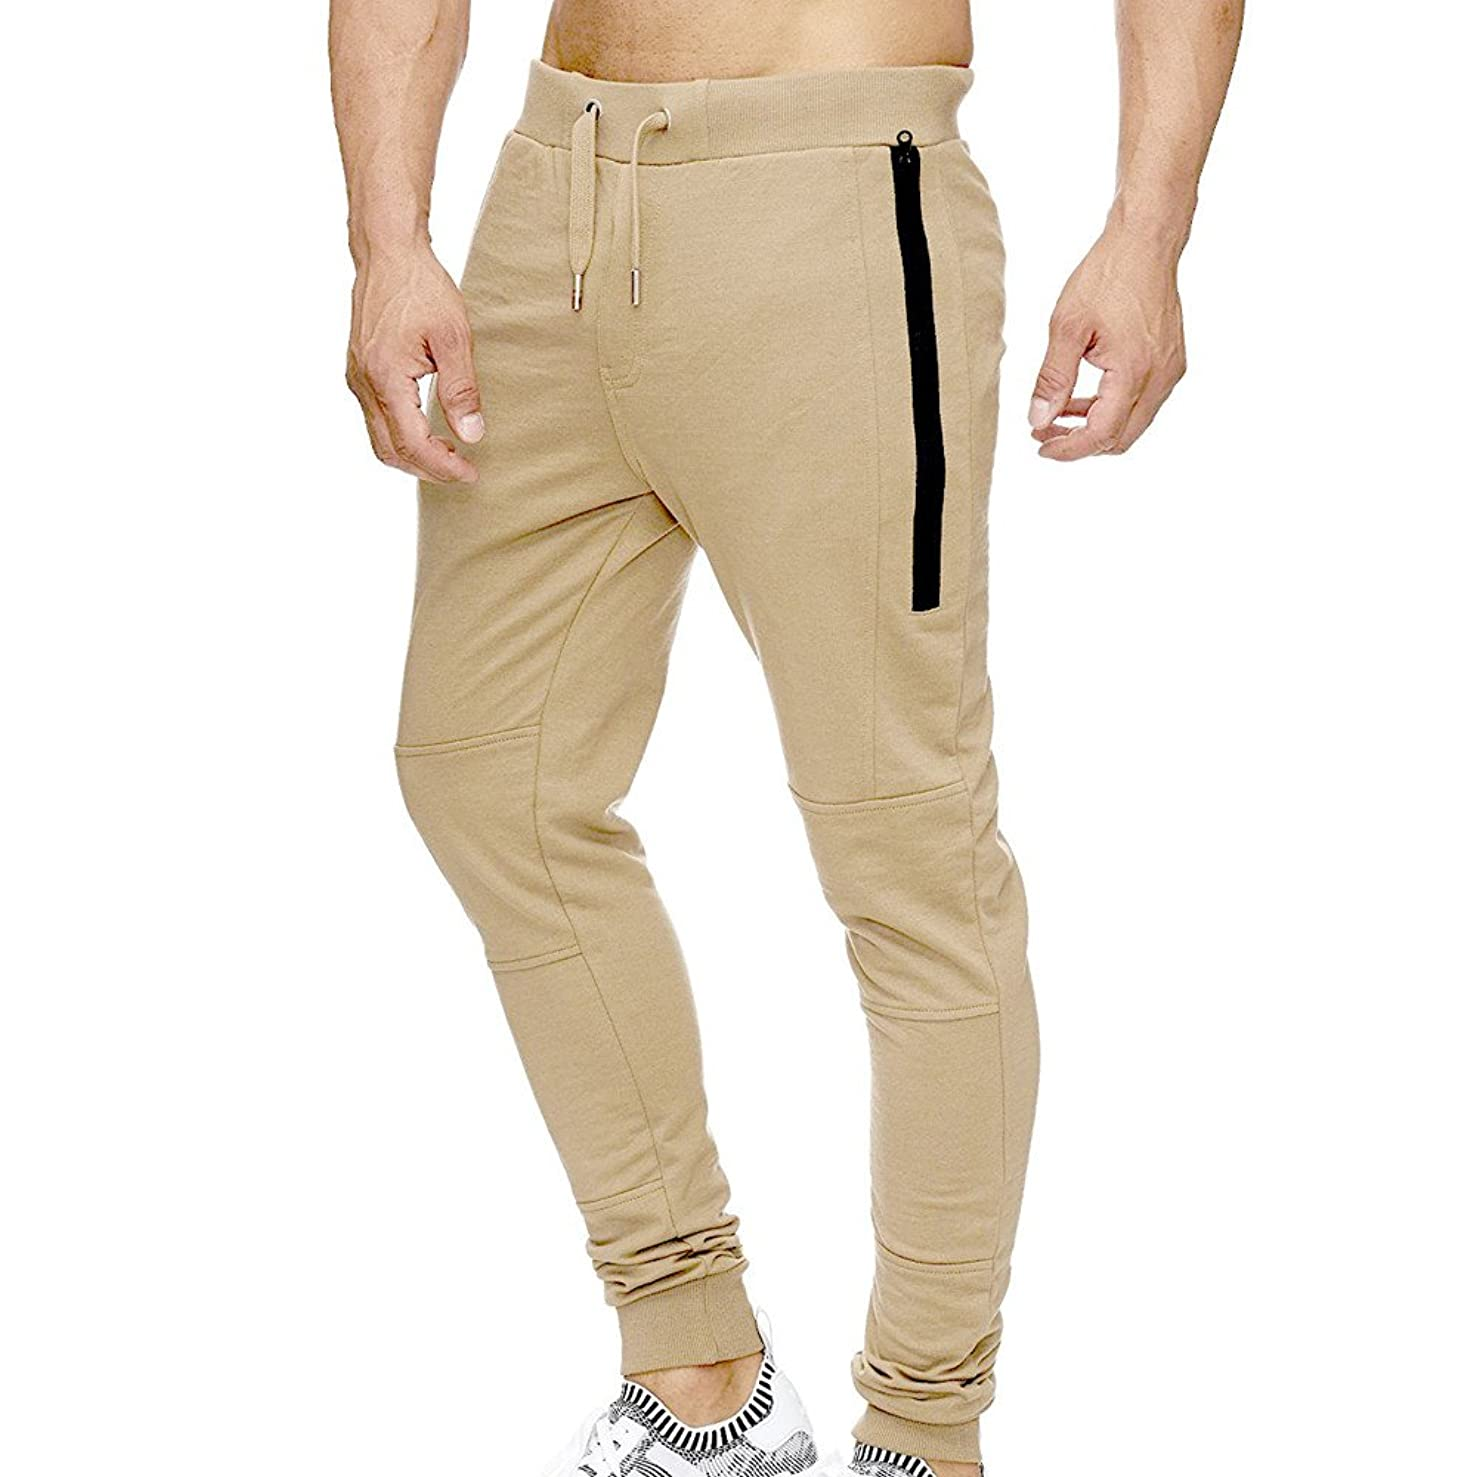 Xturfuo Men's Sweatpant Elastic Loose Fit Yoga Pants Quick Dry Joggers Breathable Pants